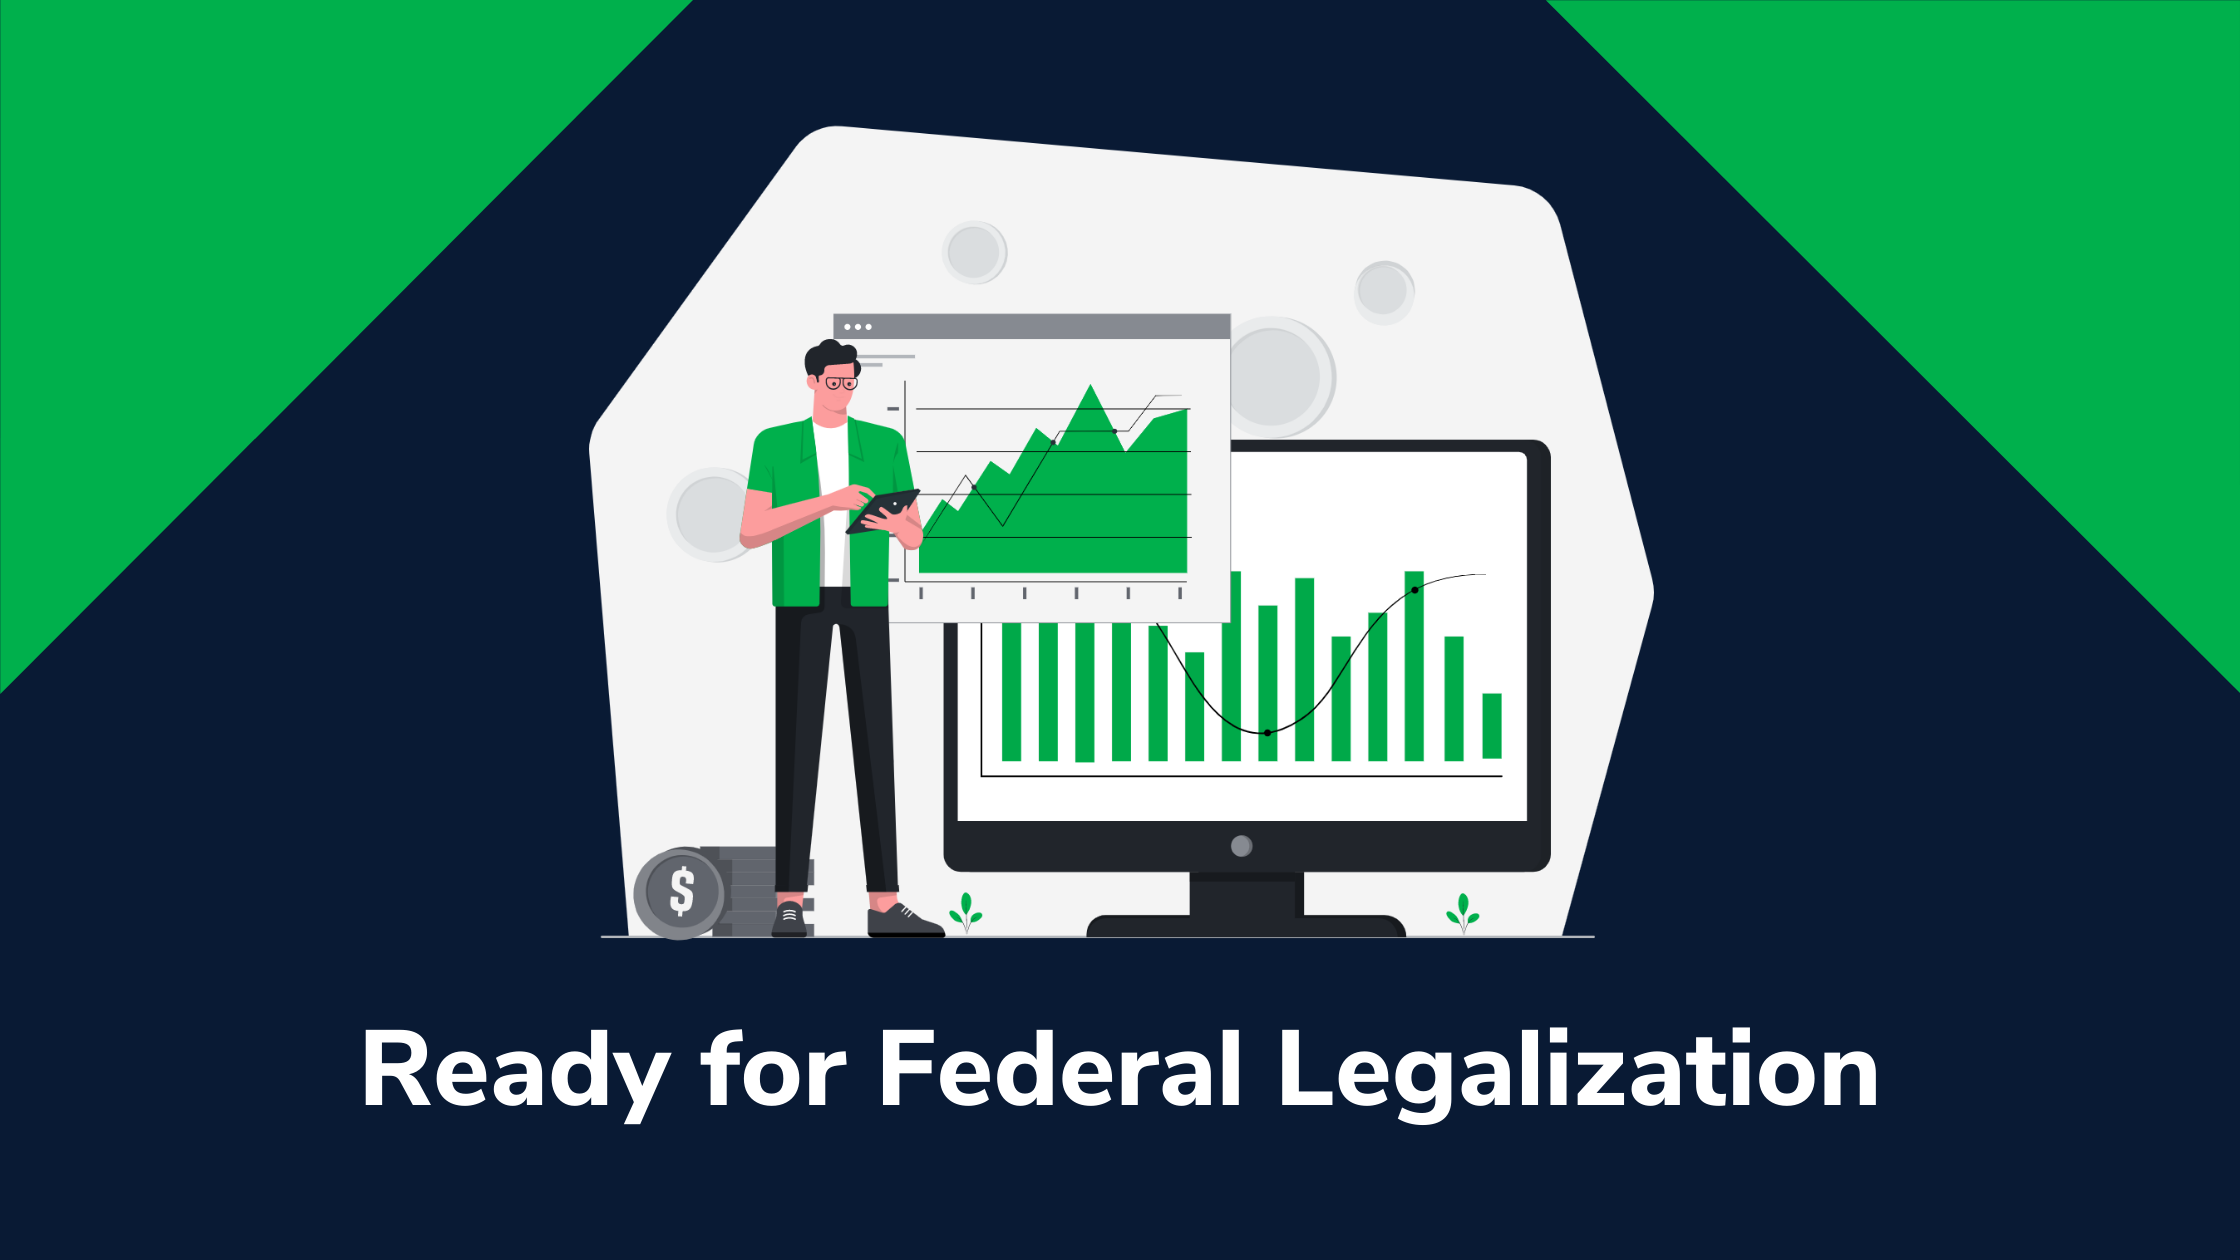 Get Ready for Federal Legalization